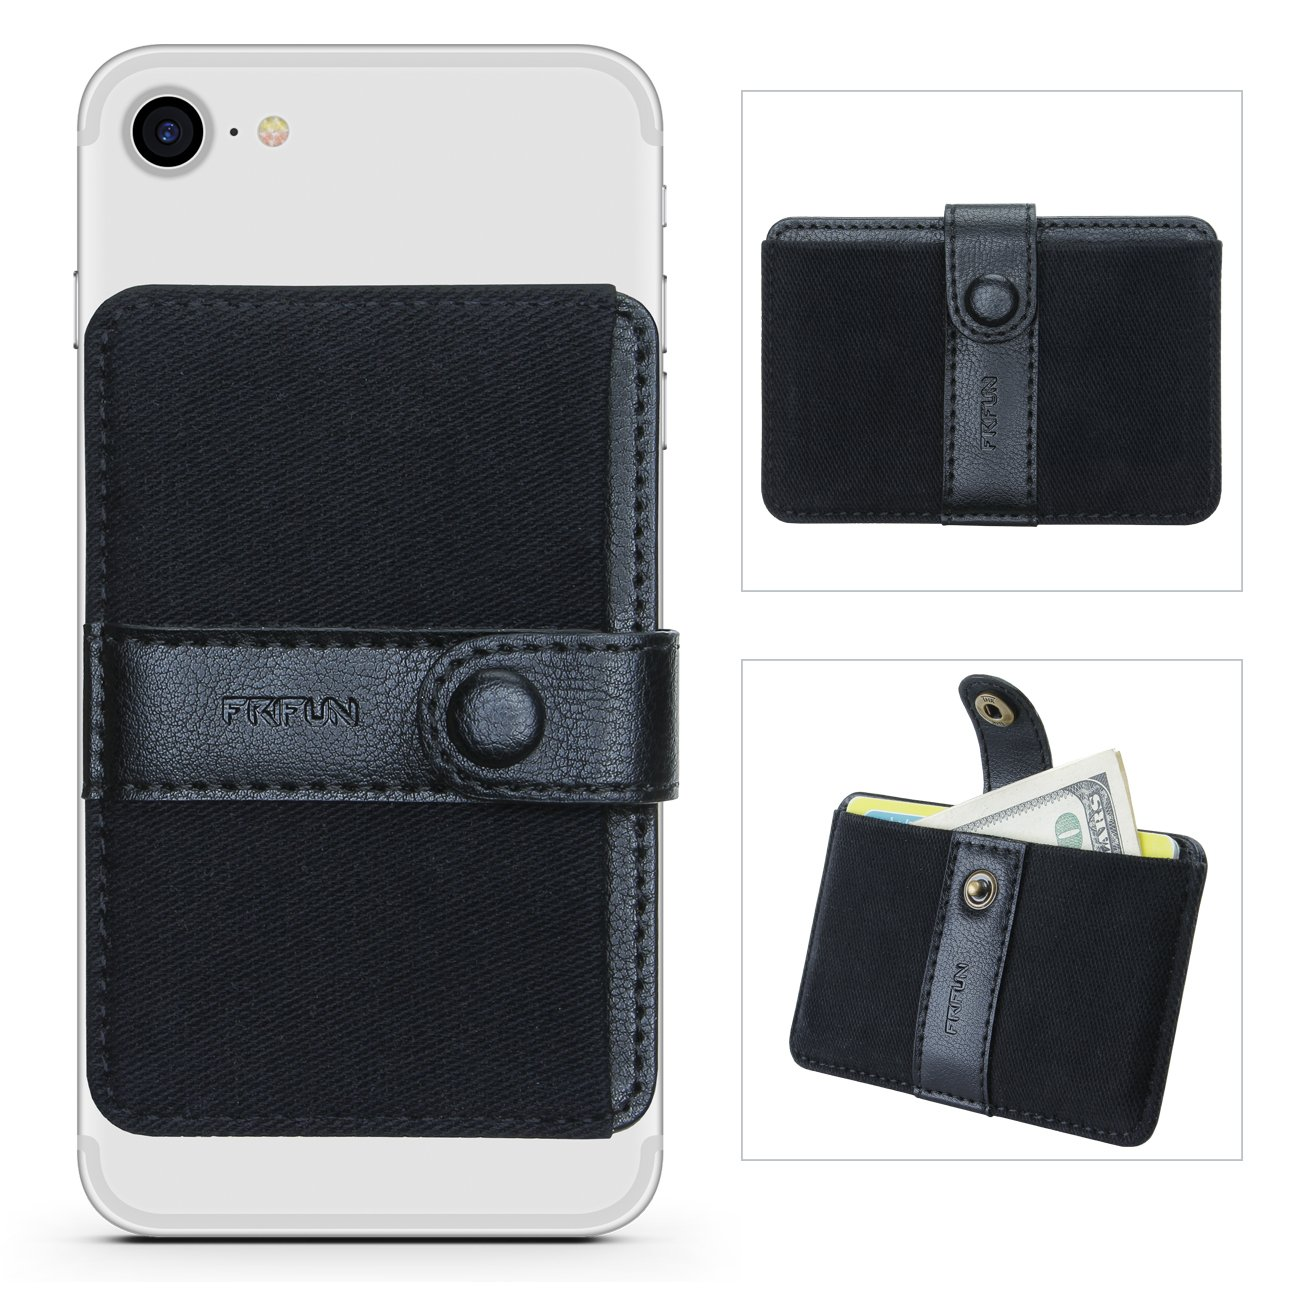 super popular 0c526 89af5 Phone Card Holder Ultra-slim Self Adhesive Stick-on Credit Card Wallet,  Cell Phone Wallet with Pocket for Credit Card, ID, Business Card - iPhone,  ...